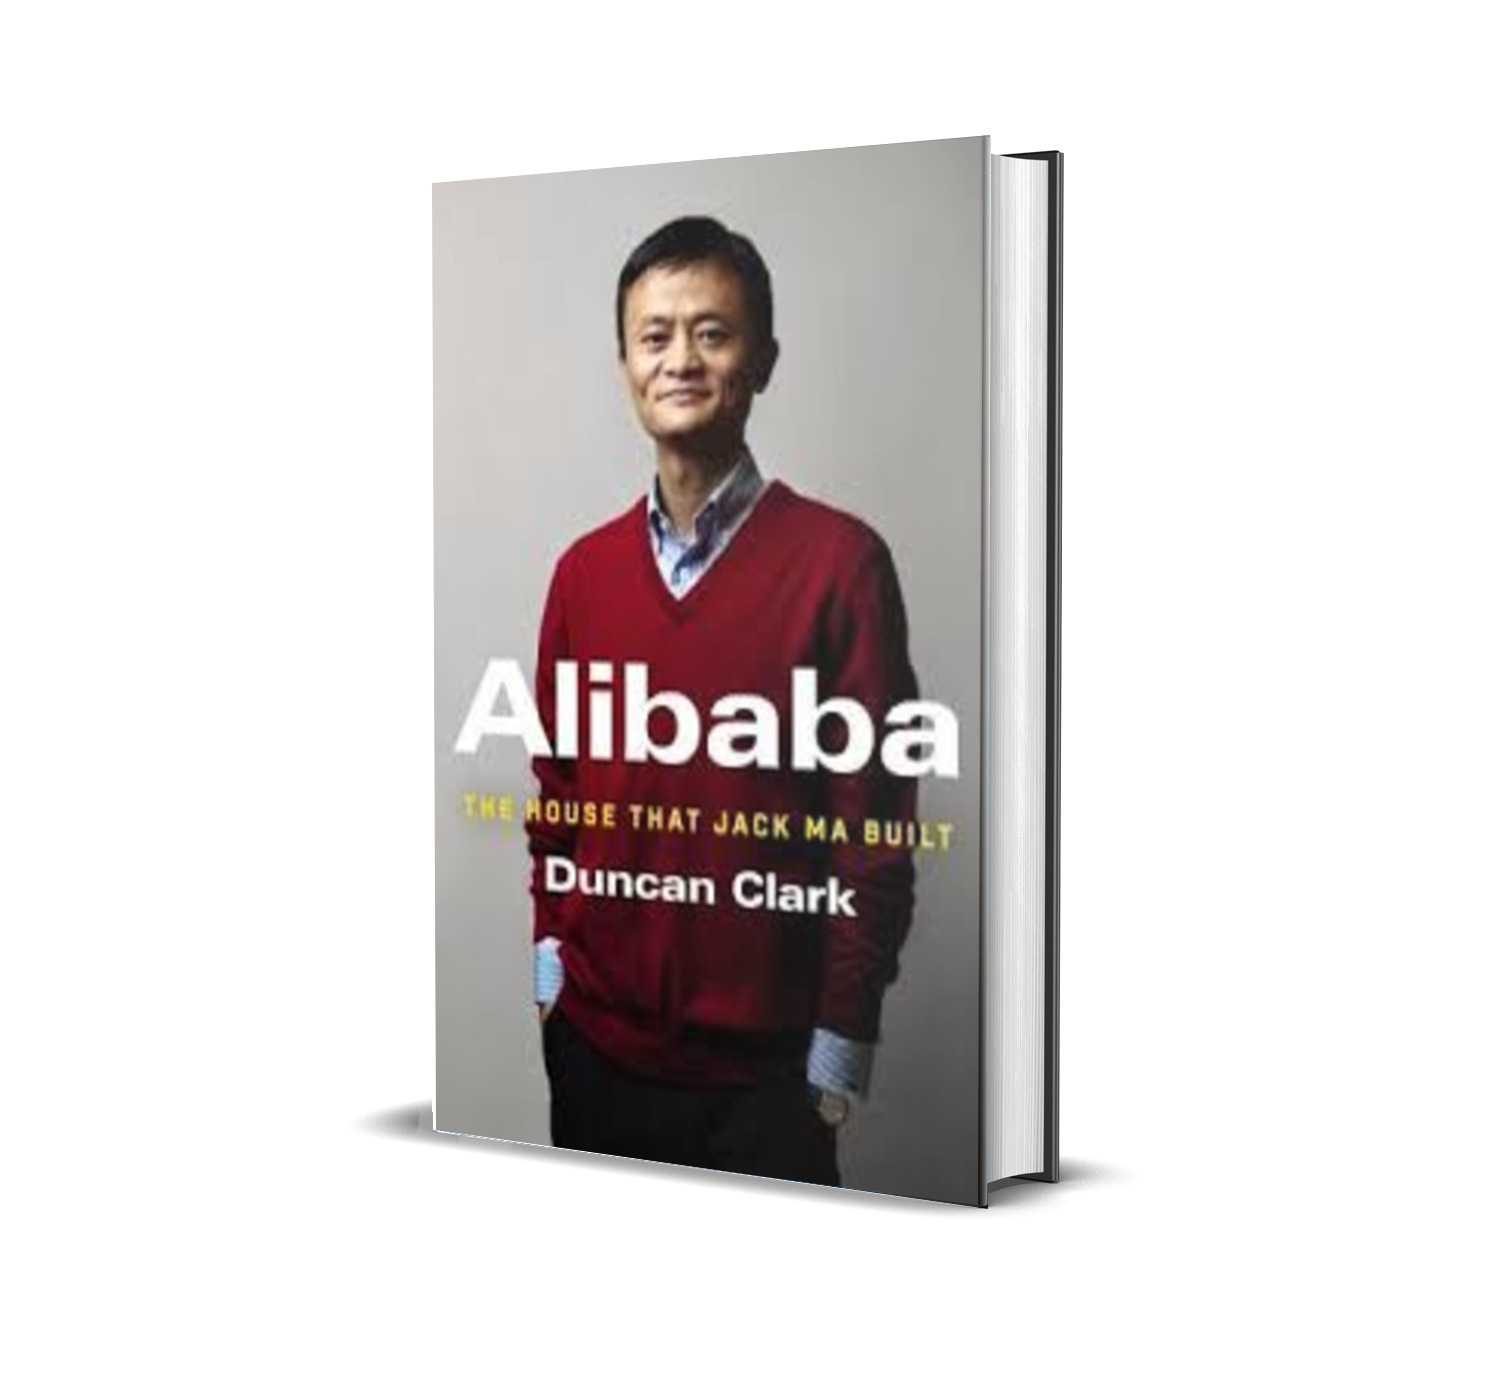 Alibaba, the house that jack ma built-duncan clerk